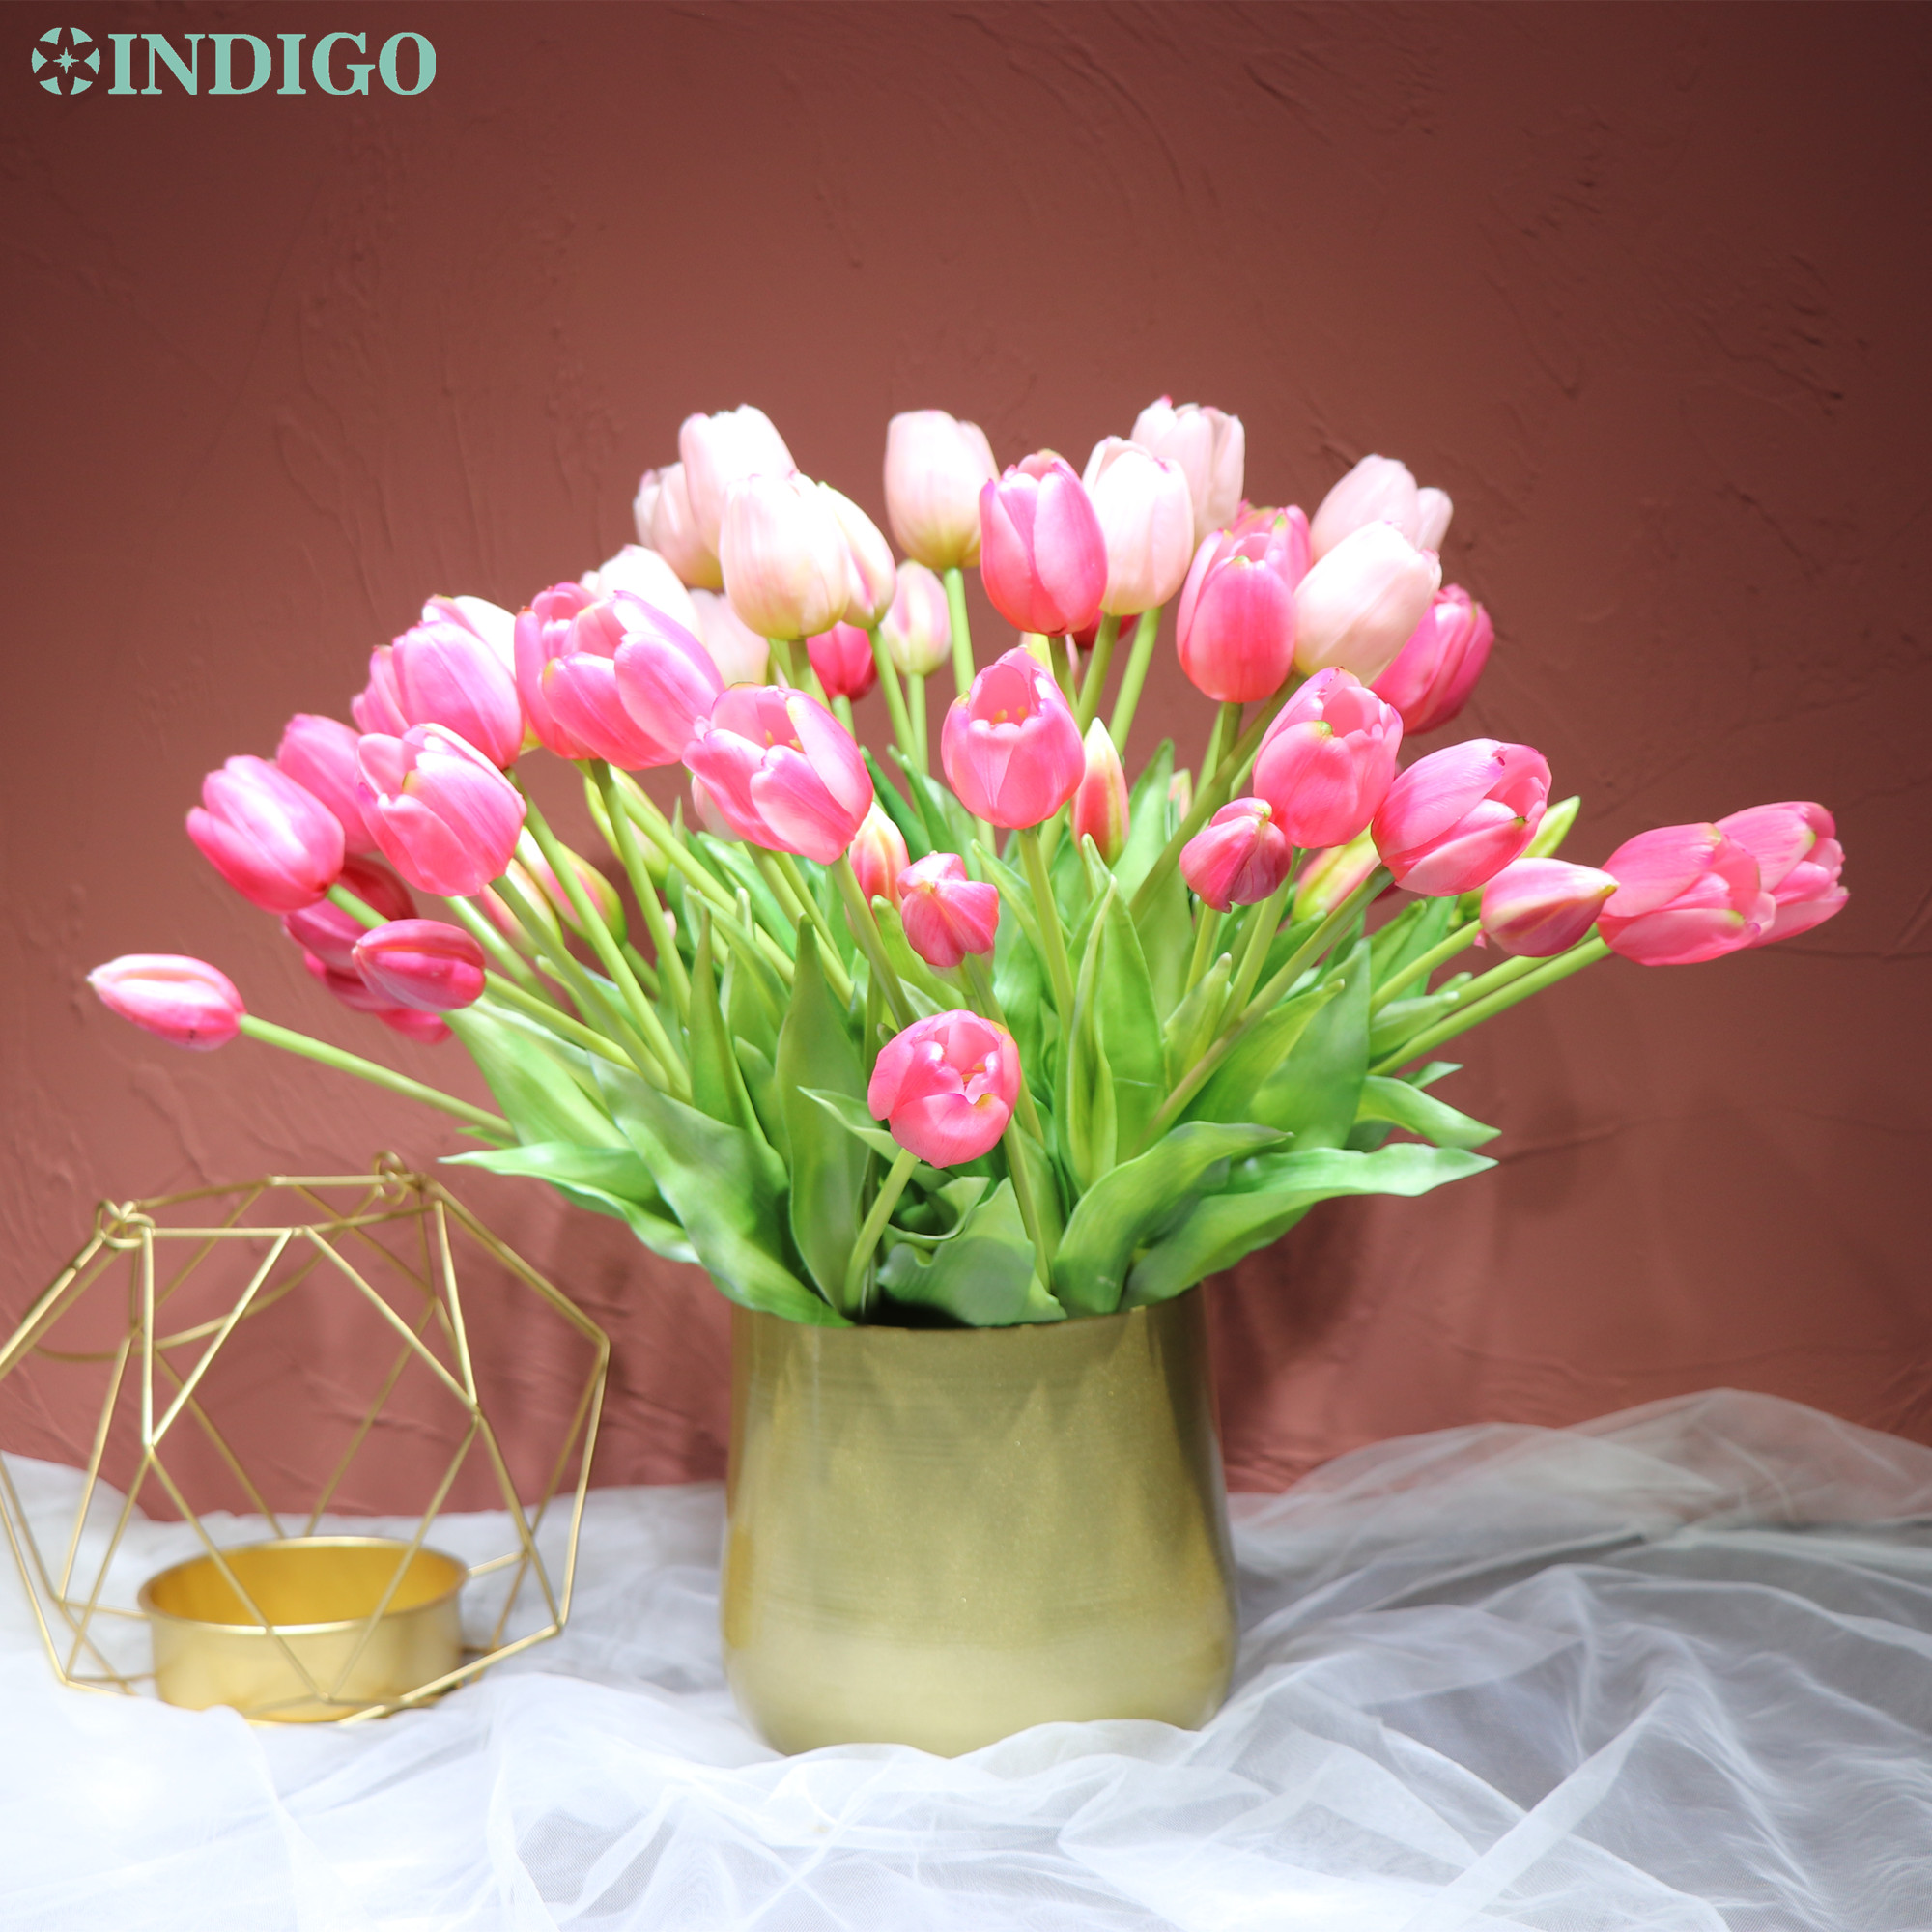 INDIGO-(3 flowers+2 bud)Bouquet Real Touch Silicone Tulip High Quality Yellow Tulip Home Artificial Flower Wedding DropShipping-3